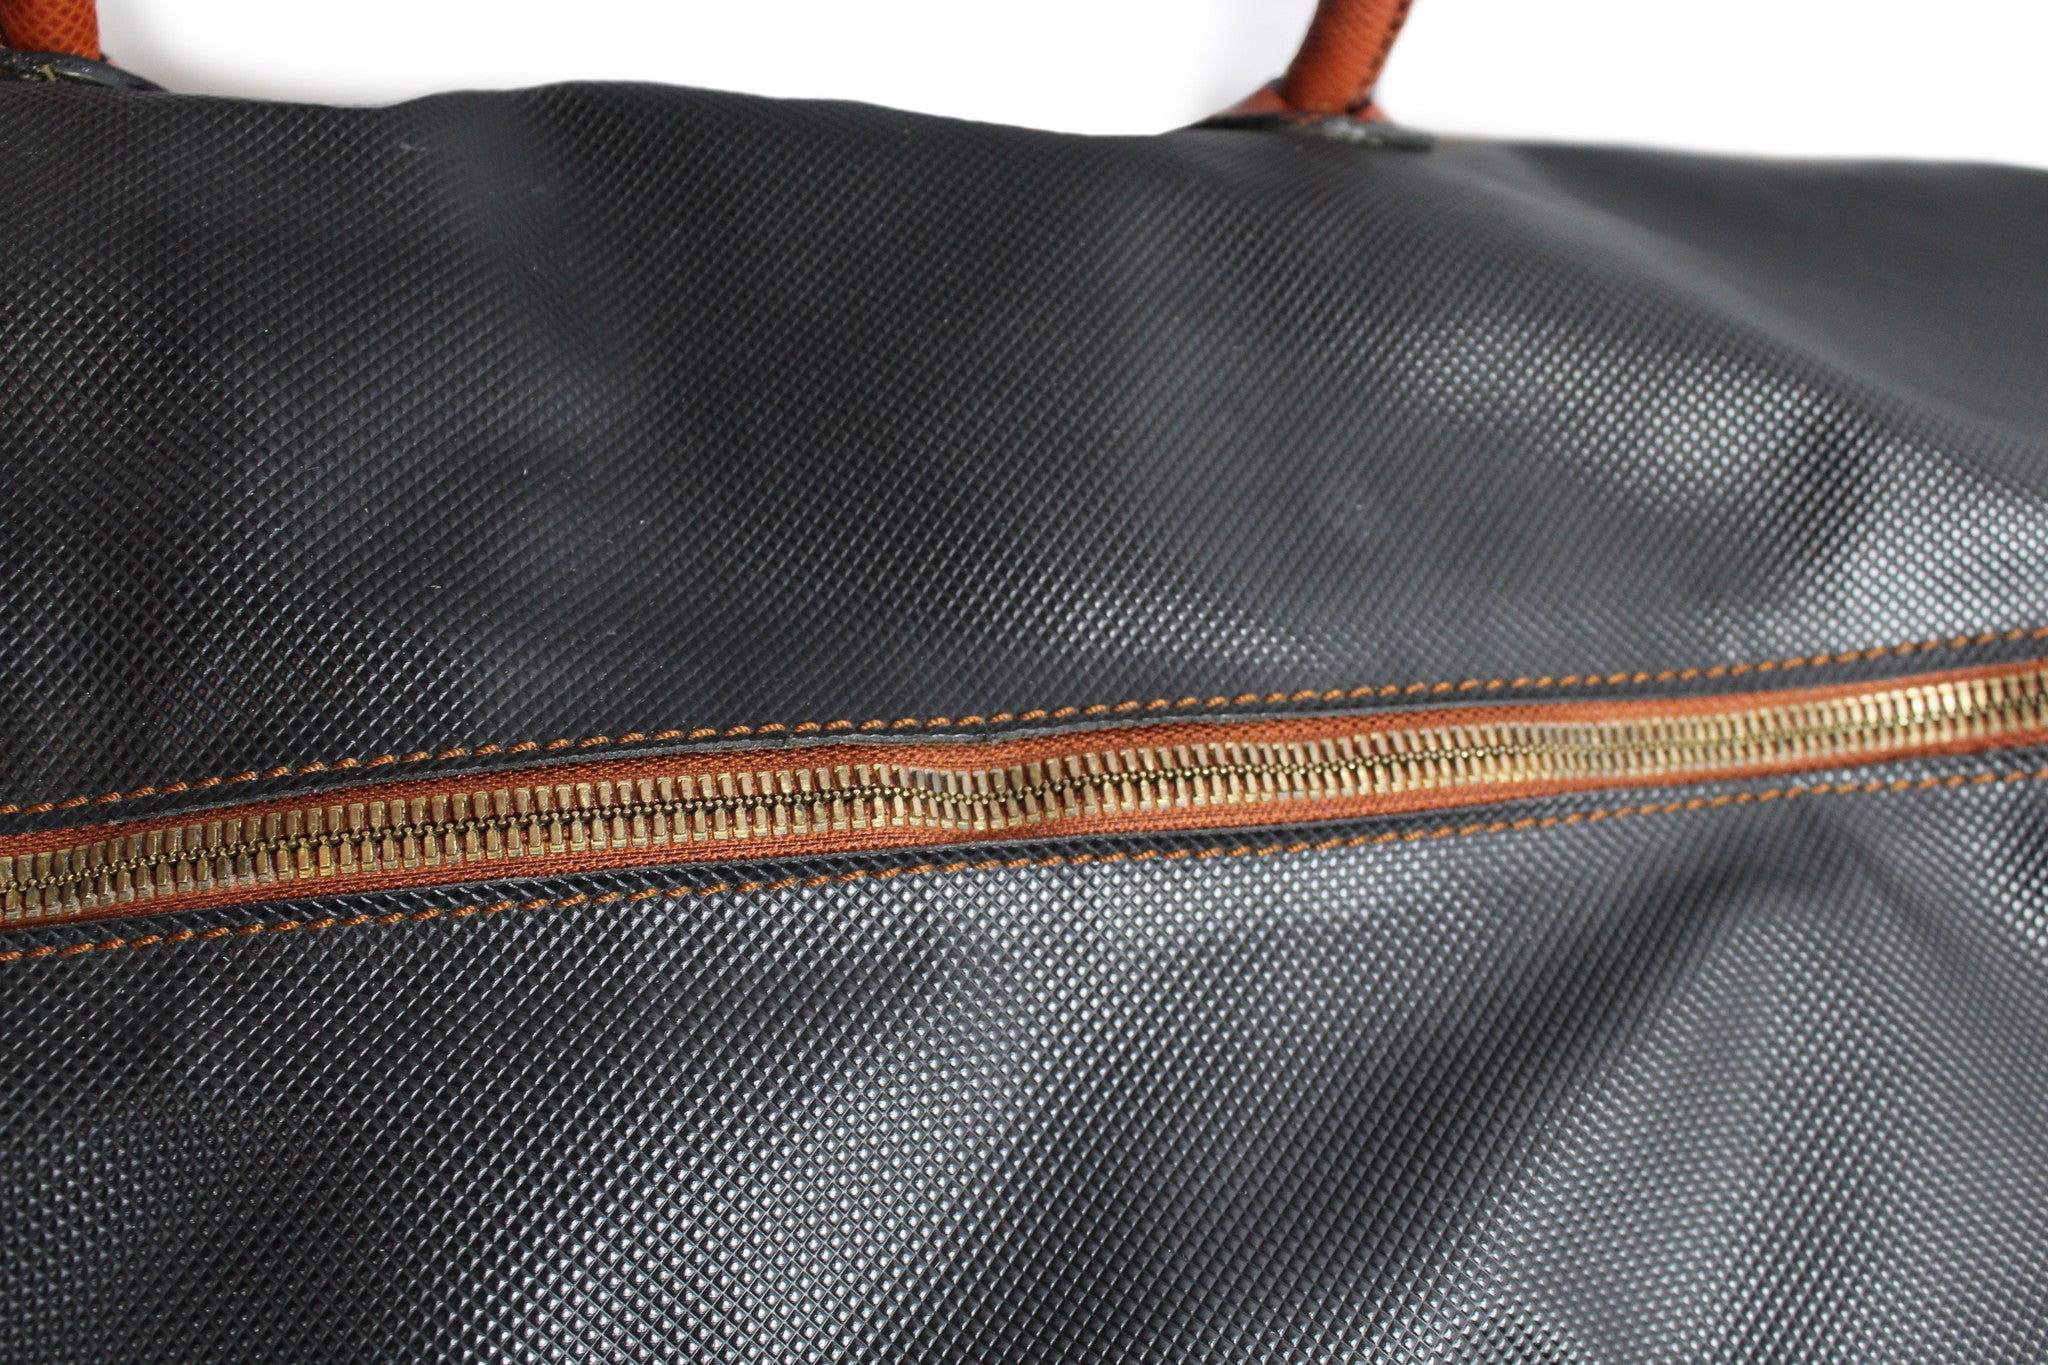 Bottega Veneta Black and Copper Leather Duffle Bag - Encore Consignment - 5